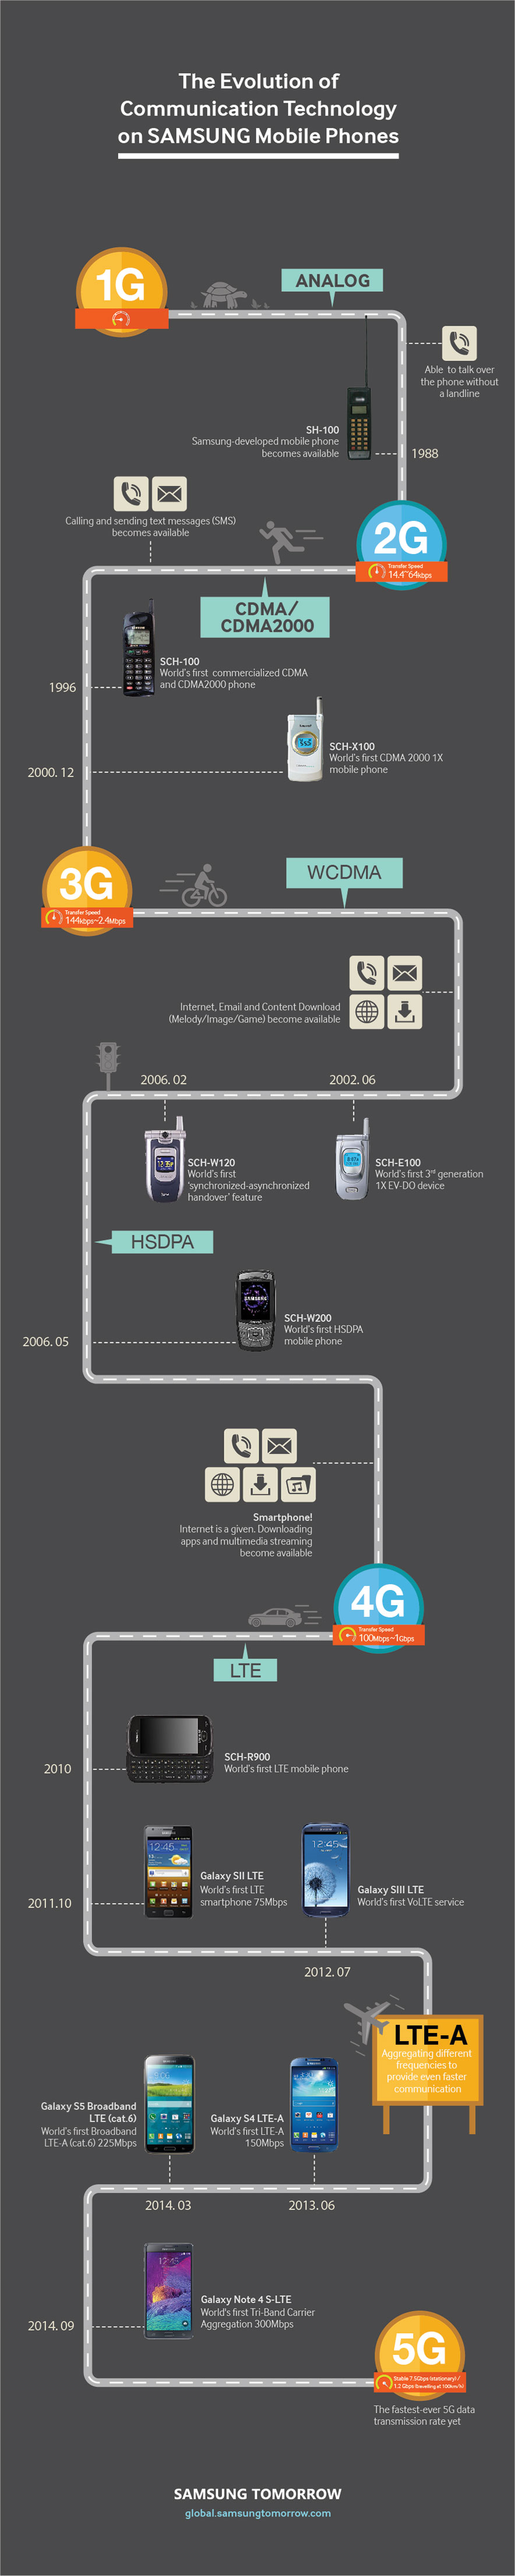 Mobile Technology: [Infographic] The Evolution Of Communication Technology On